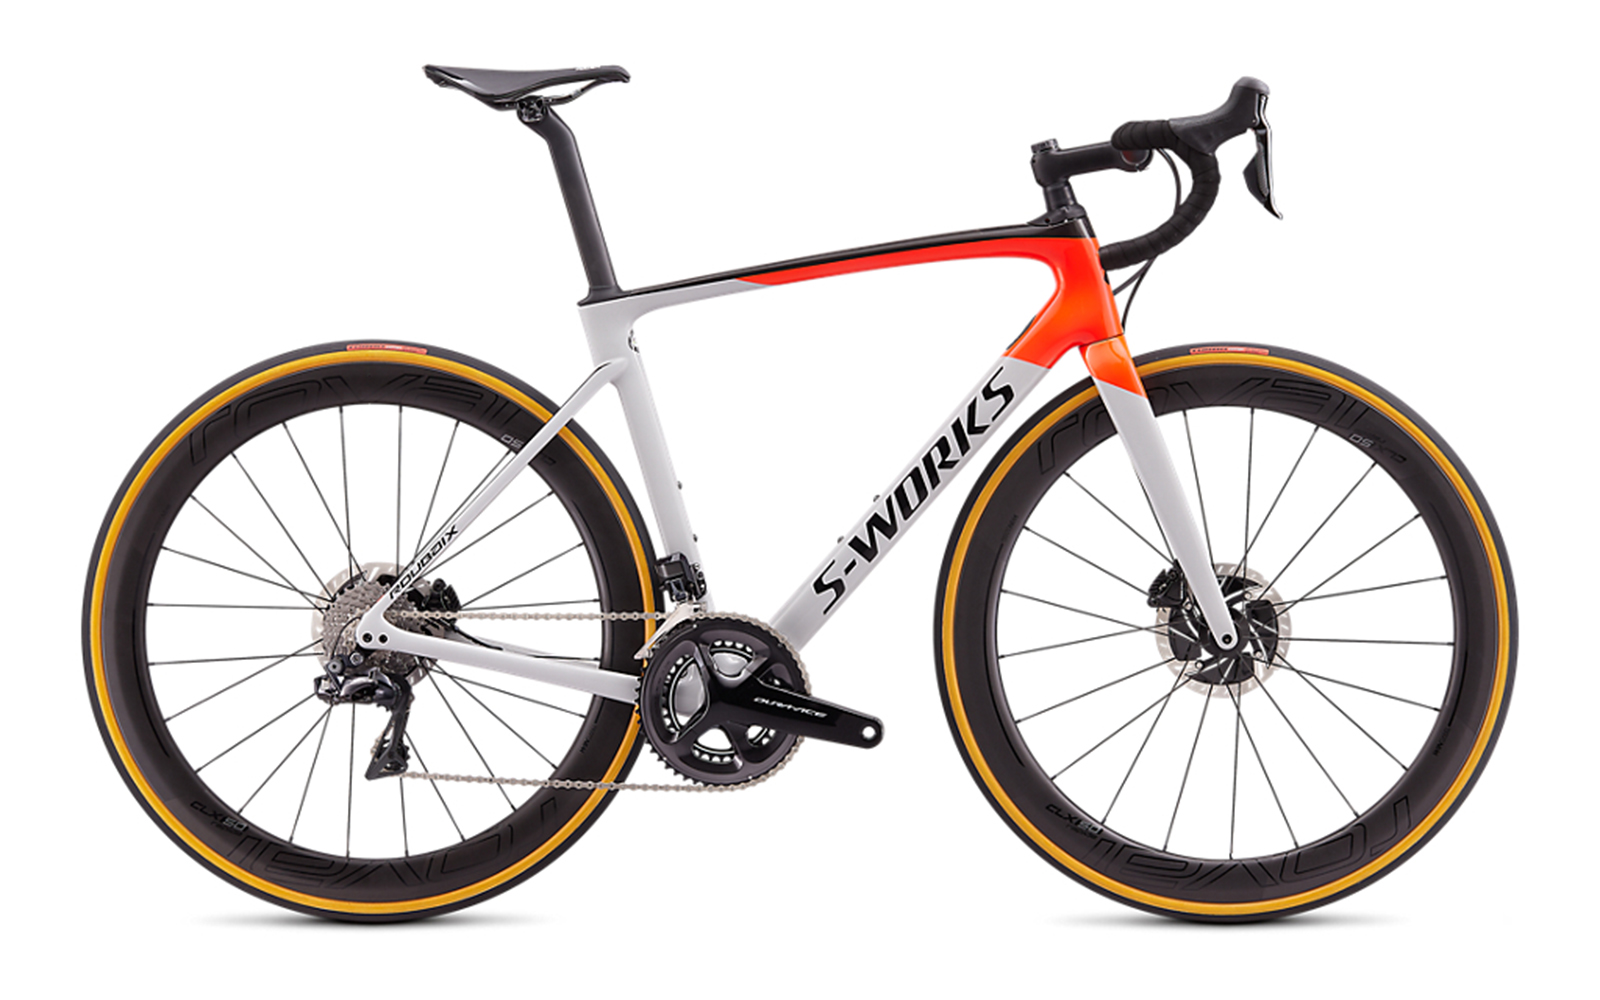 Specialized road bikes 2019: range, details, pricing and